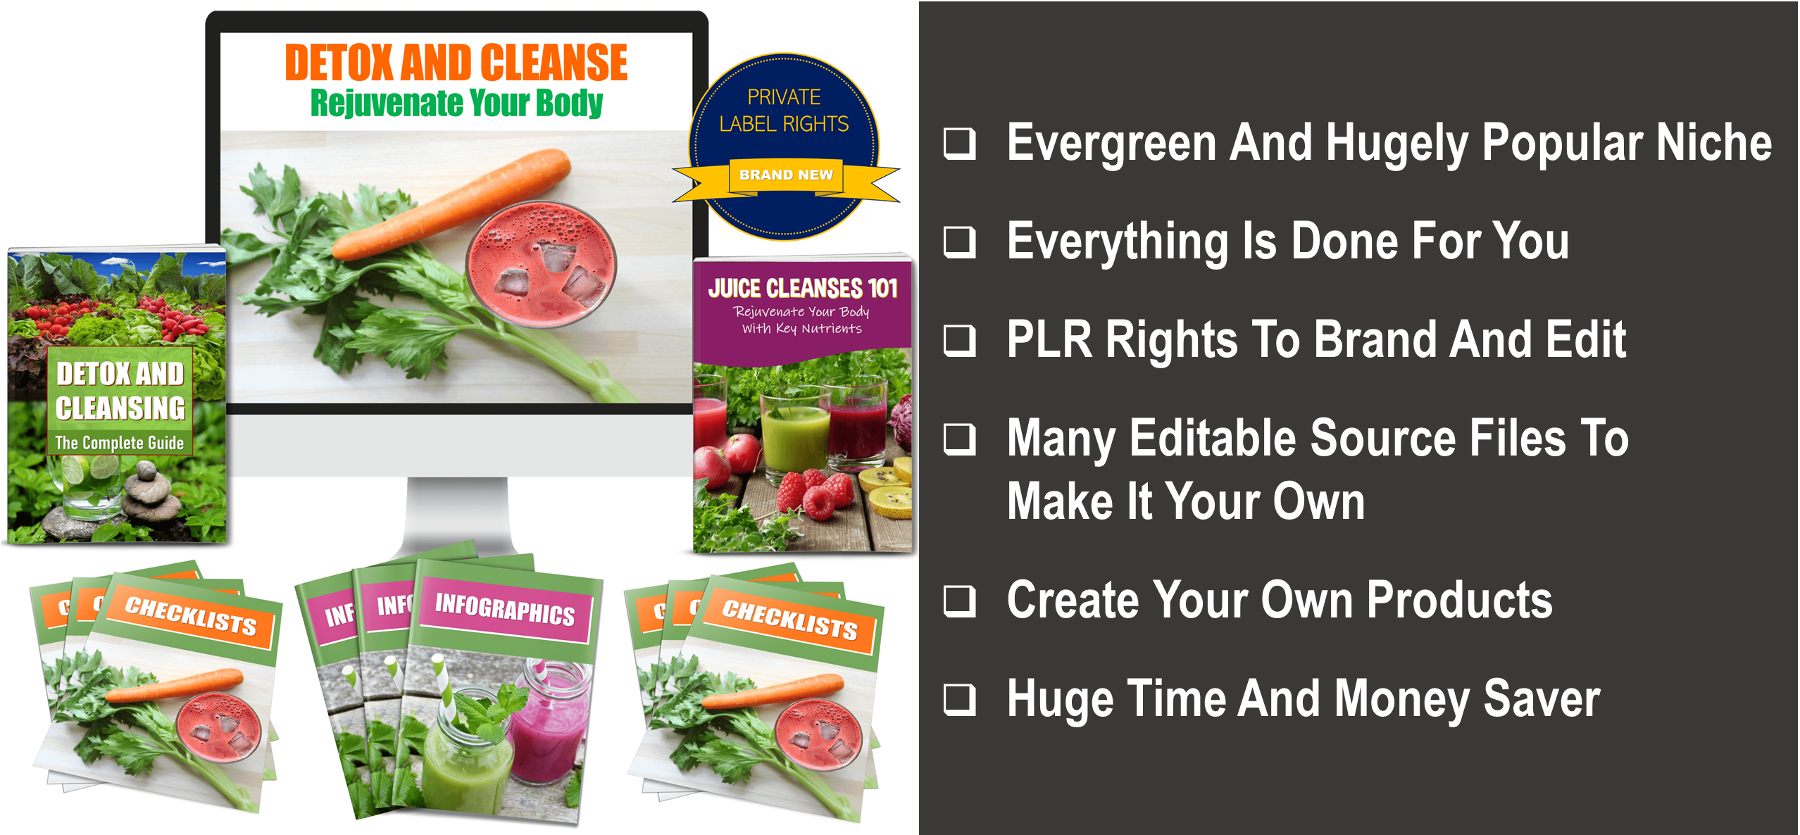 Detox And Cleanse Your Body PLR